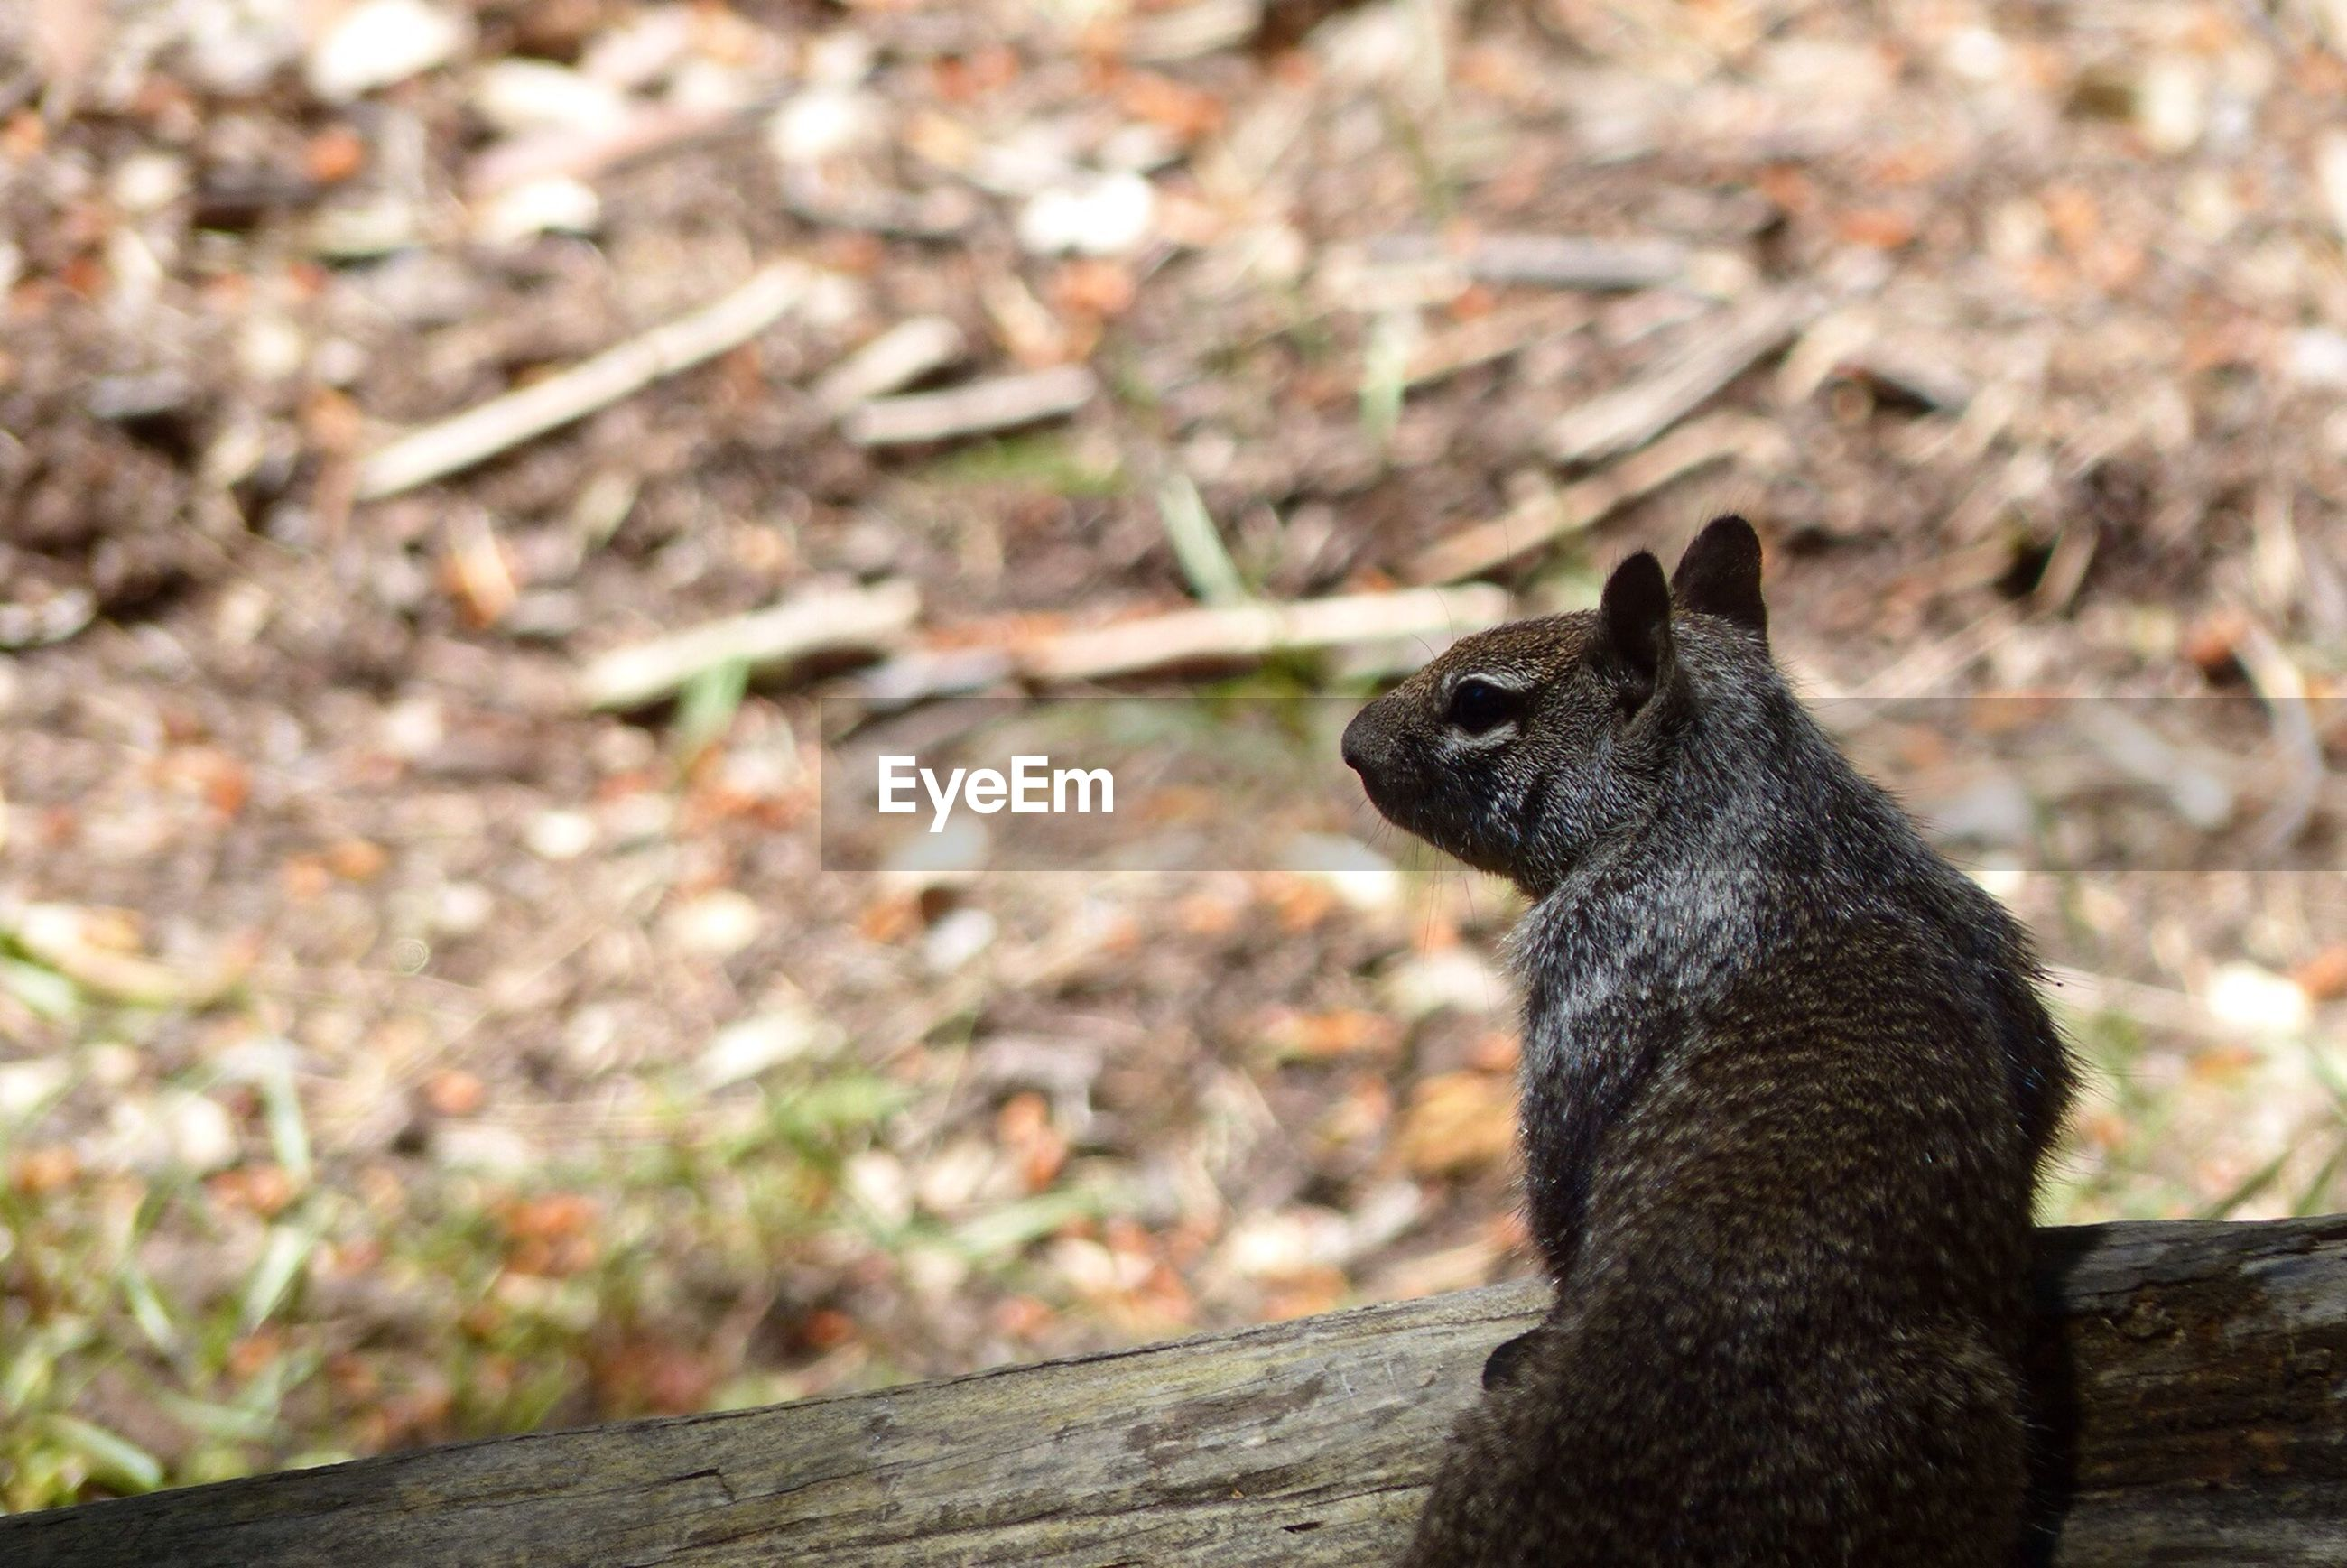 animal themes, one animal, animals in the wild, wildlife, focus on foreground, mammal, close-up, sitting, black color, wood - material, outdoors, looking away, sunlight, pets, nature, side view, day, no people, domestic animals, zoology